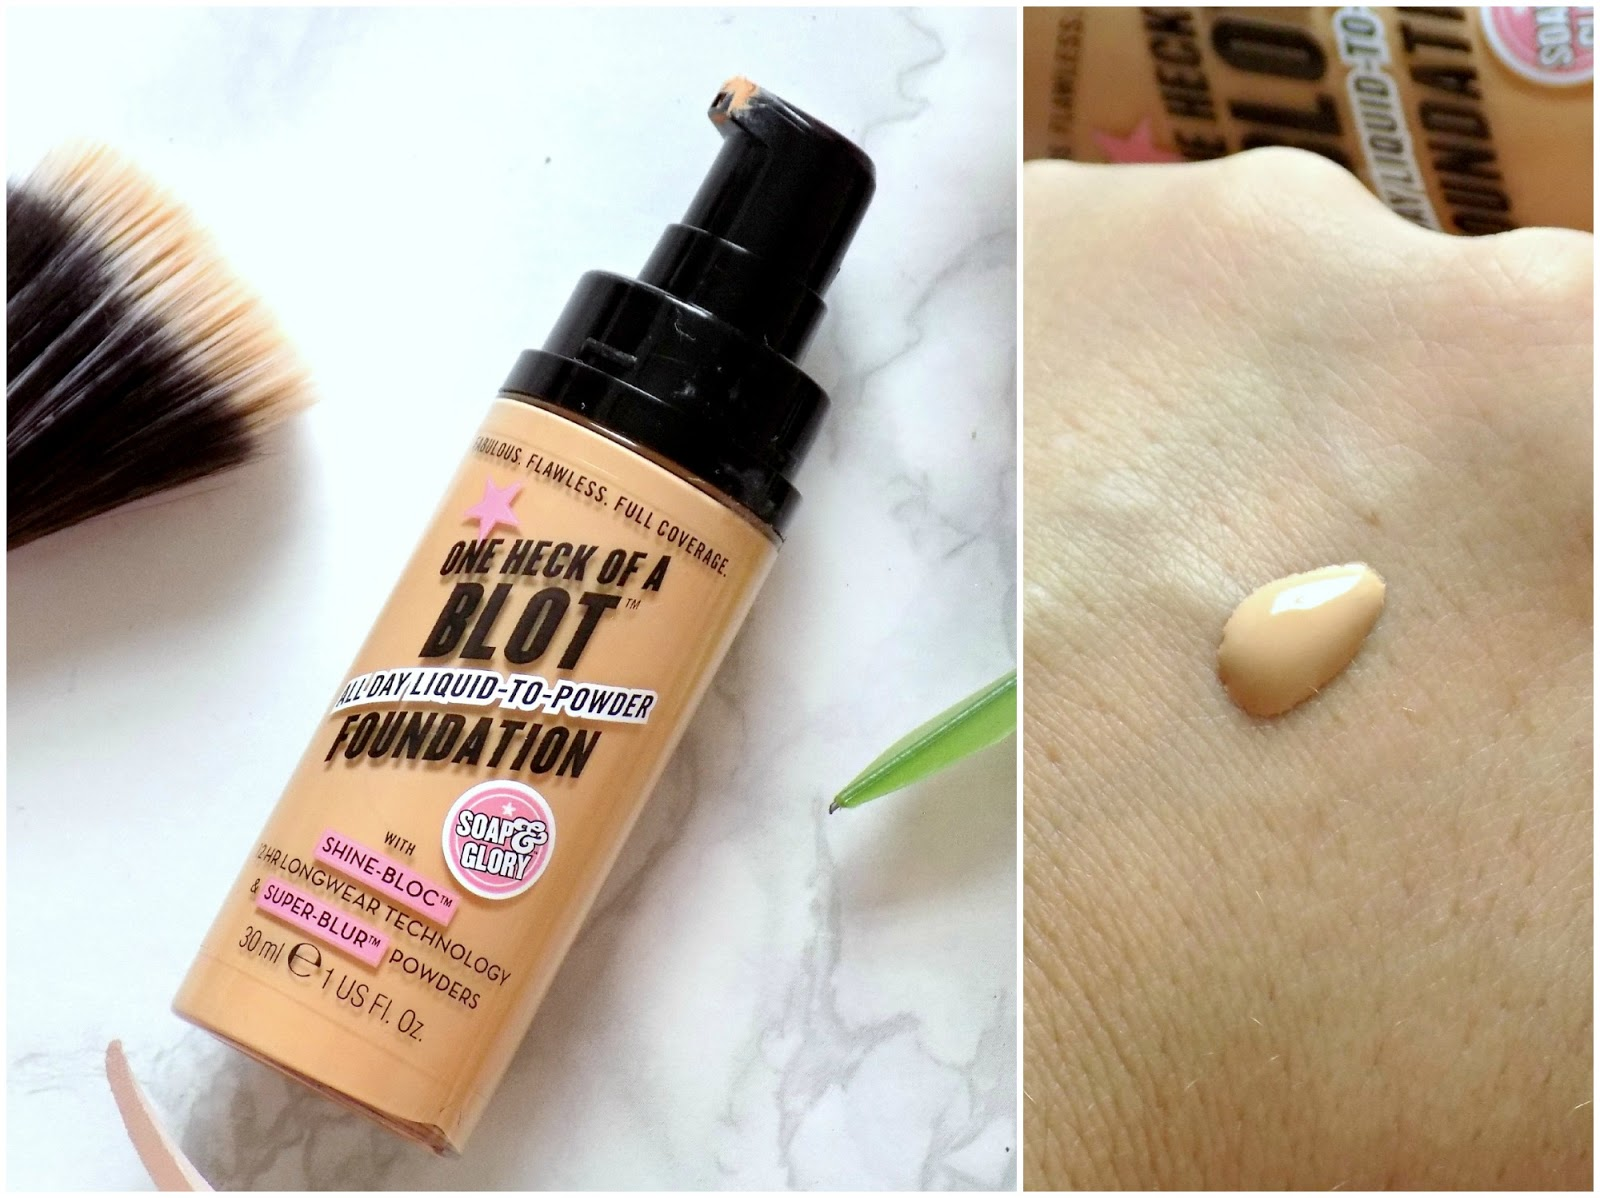 Soap & Glory One Heck of a Blot foundation